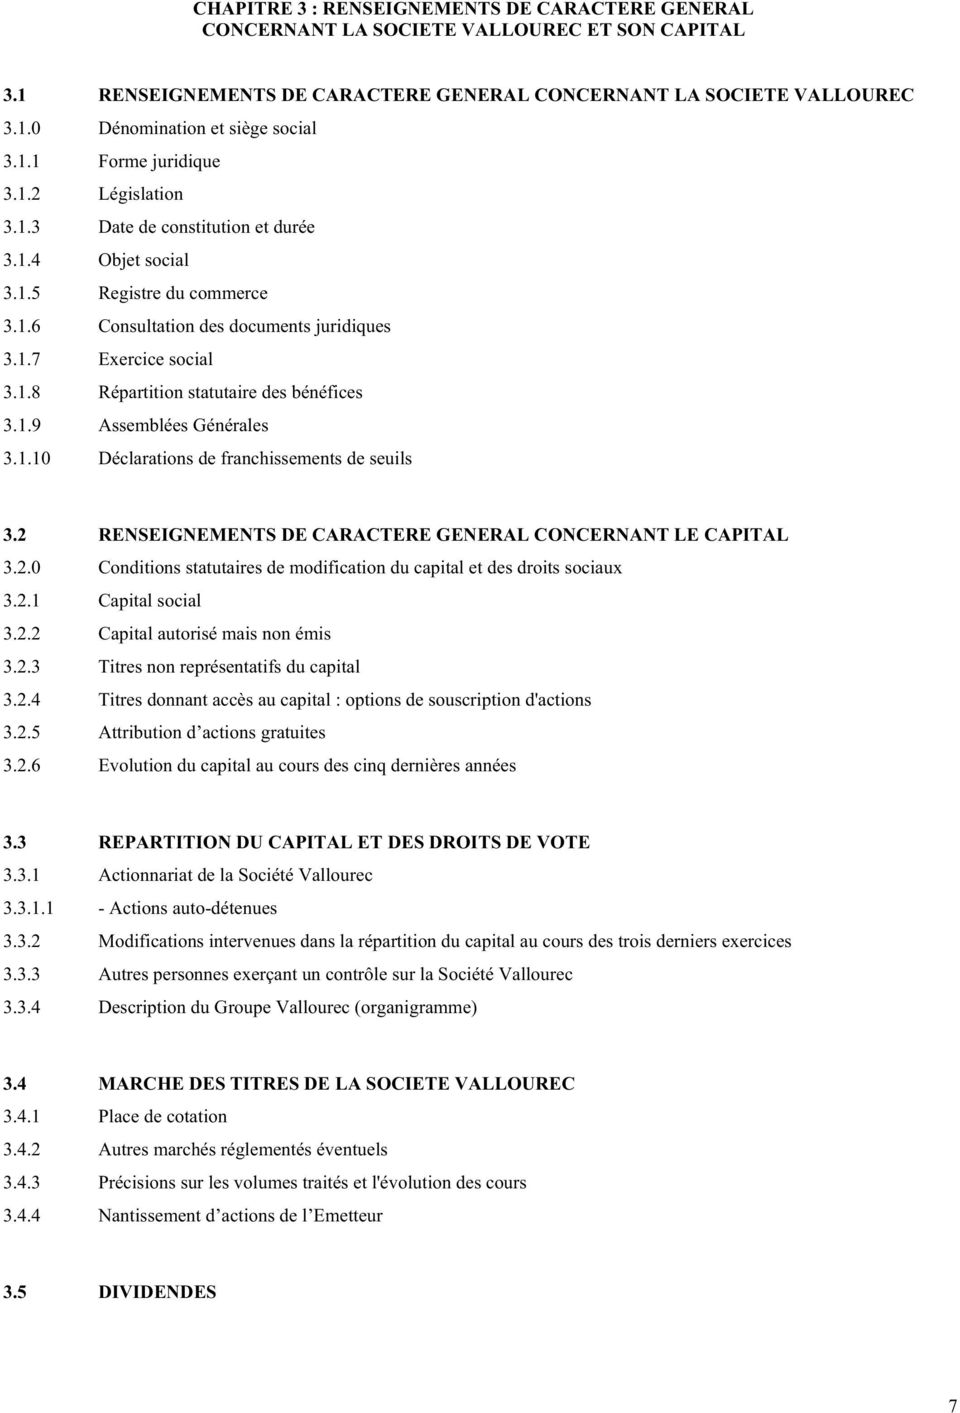 1.9 Assemblées Générales 3.1.10 Déclarations de franchissements de seuils 3.2 RENSEIGNEMENTS DE CARACTERE GENERAL CONCERNANT LE CAPITAL 3.2.0 Conditions statutaires de modification du capital et des droits sociaux 3.